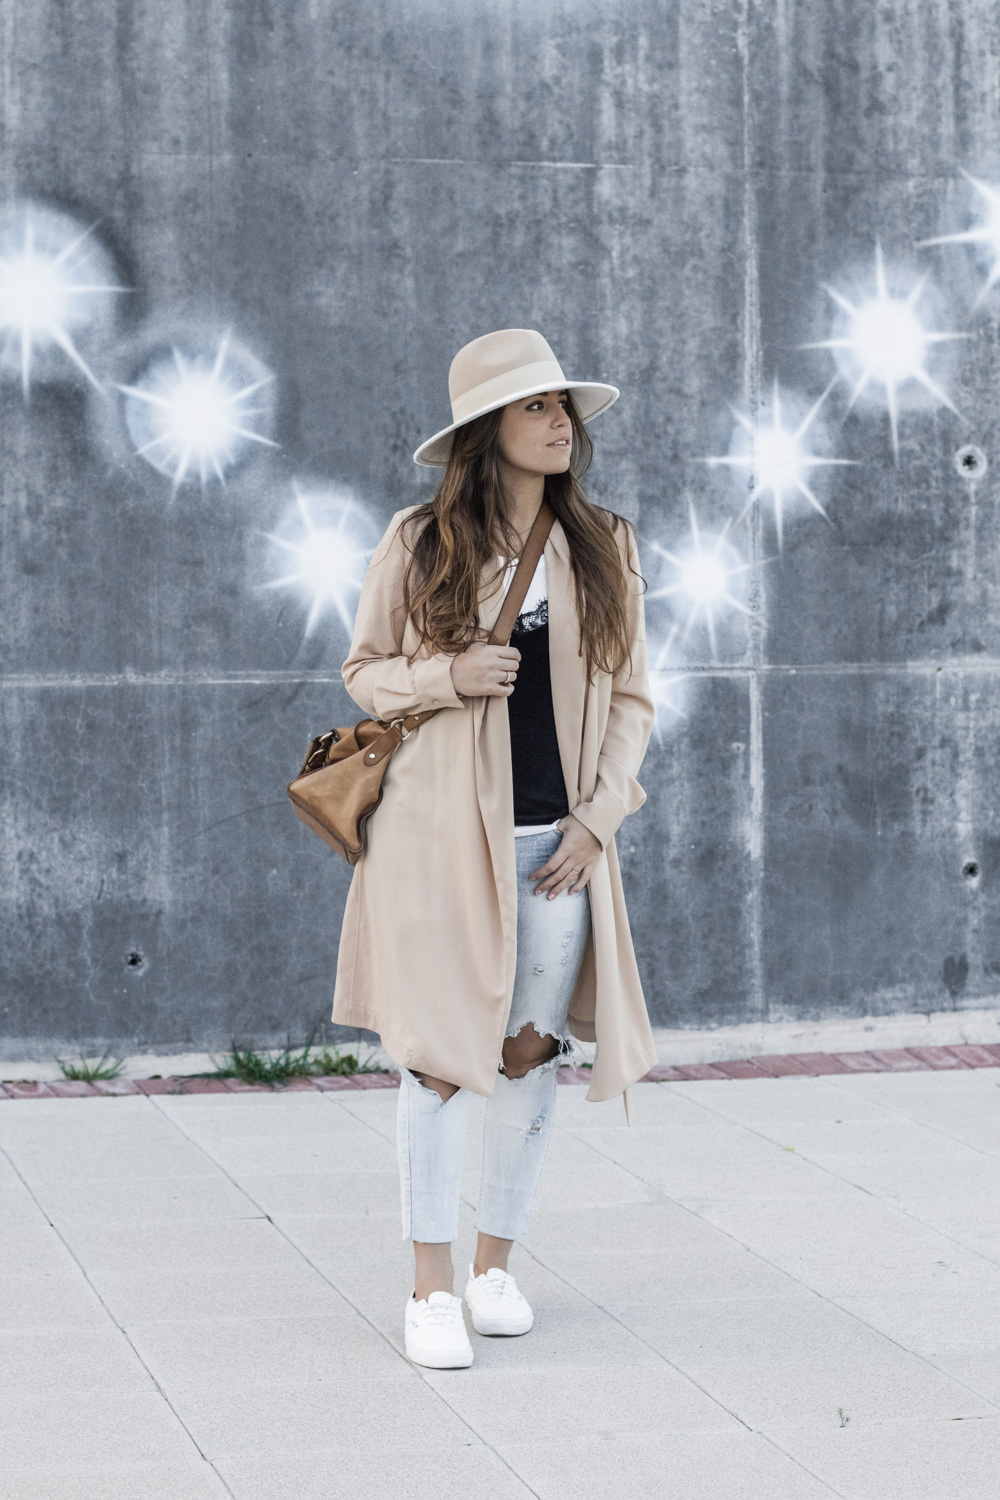 loreto_made_in_style_top_lencero_denim_trench_sombrero_blanco-1-2